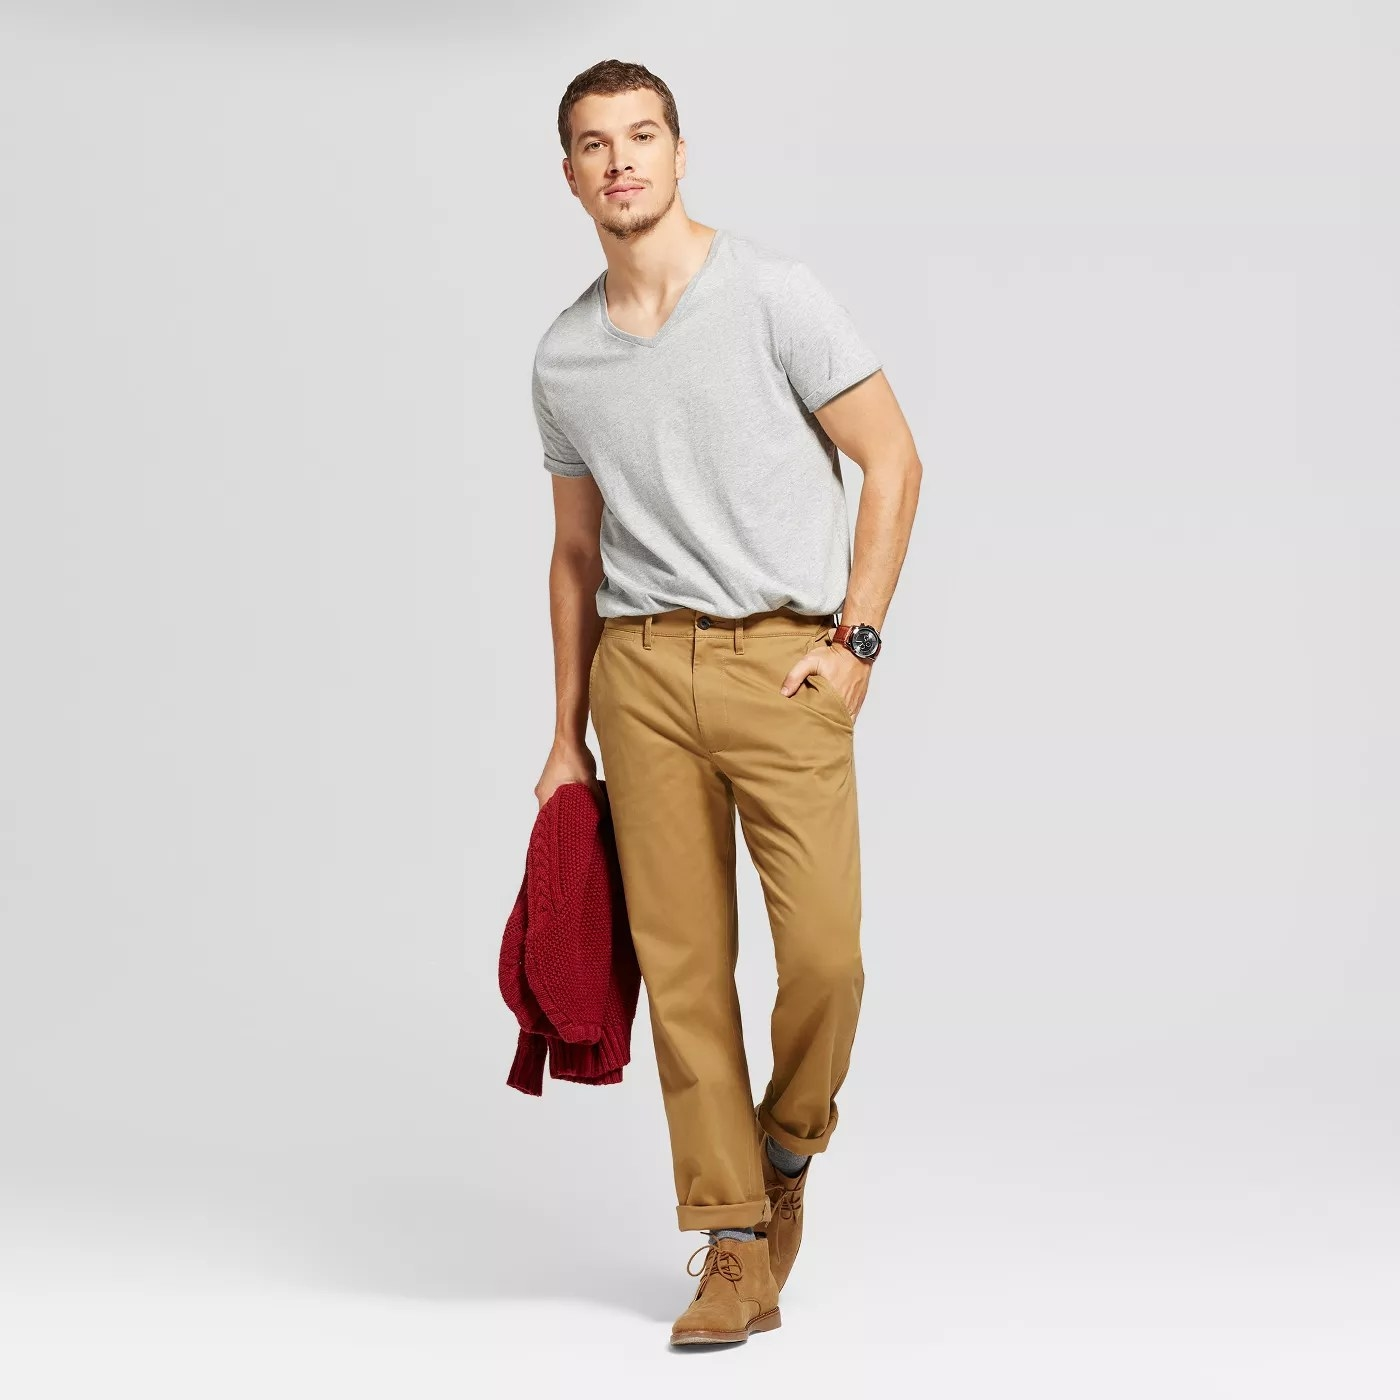 A model wearing a pair of khakis